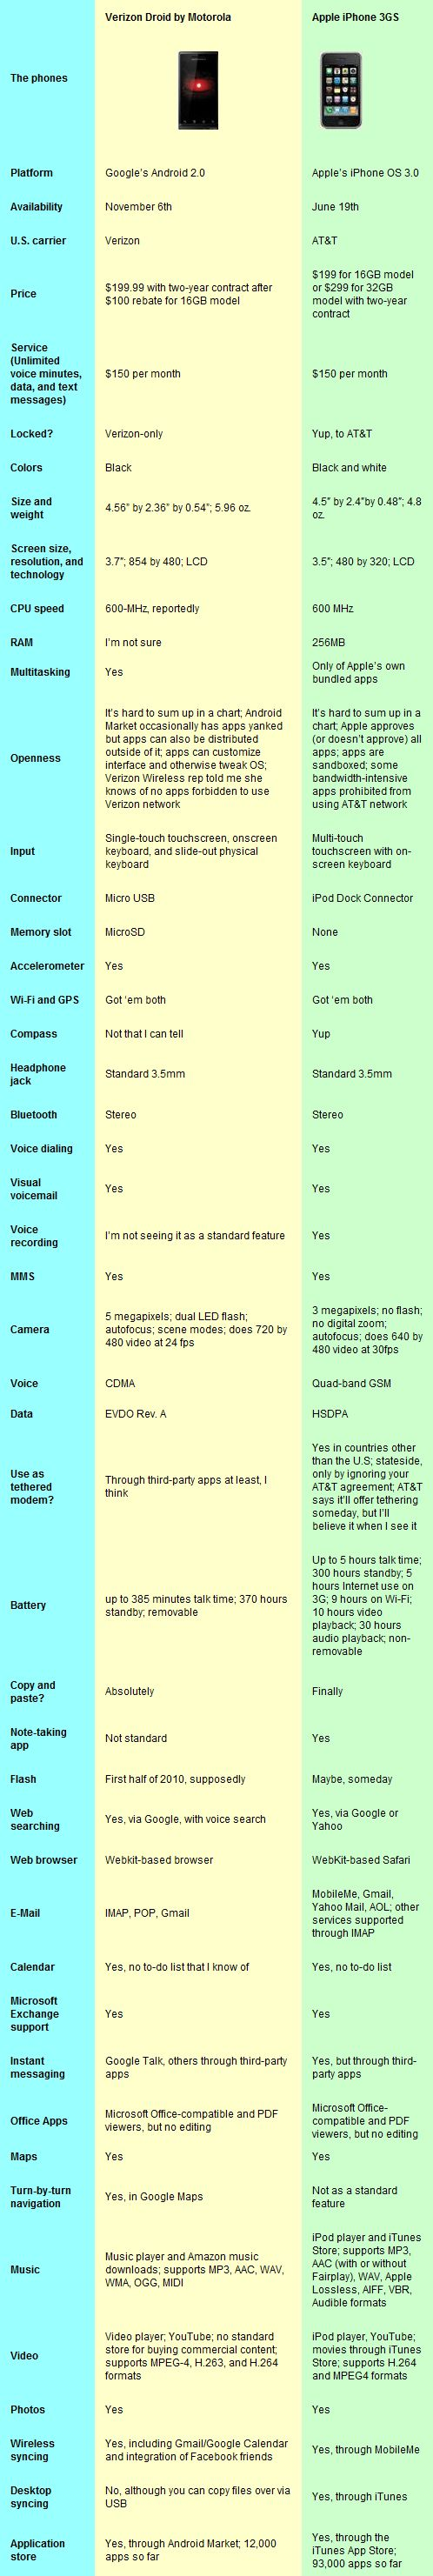 Droid iPhone comparison chart